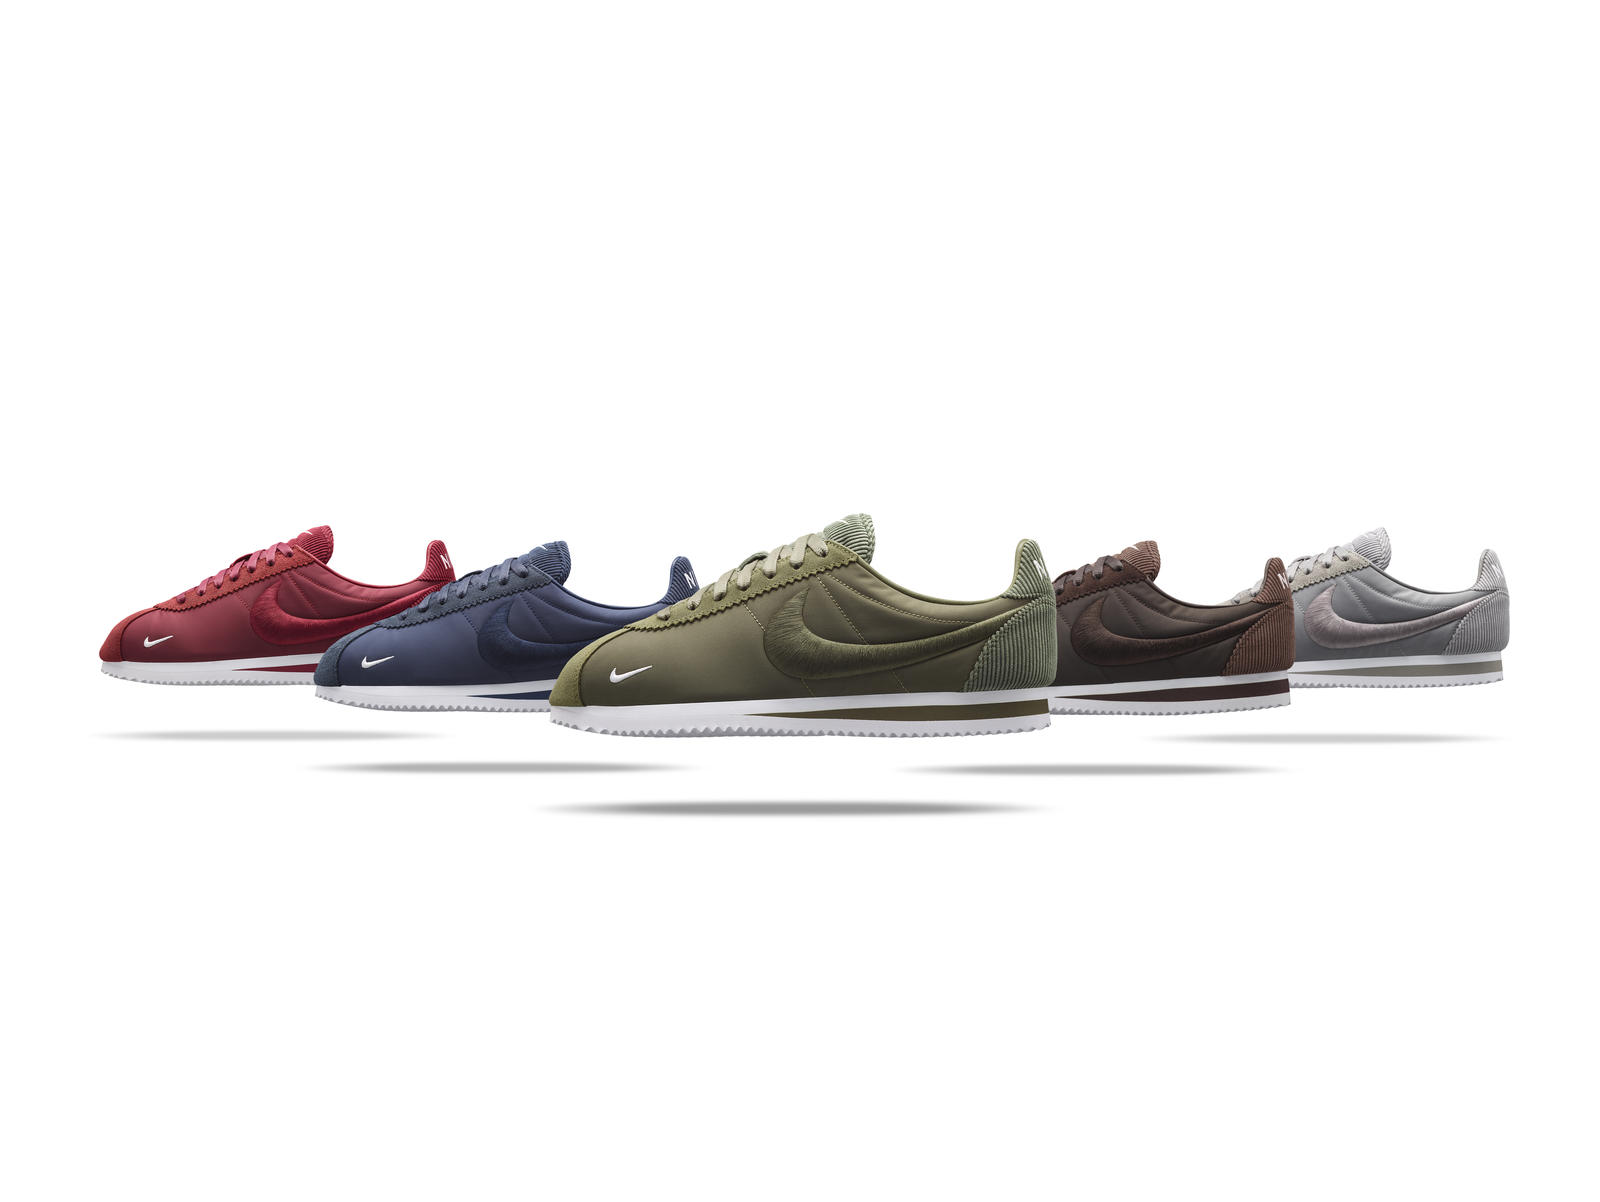 nikelab-cortez-textil-collection-1